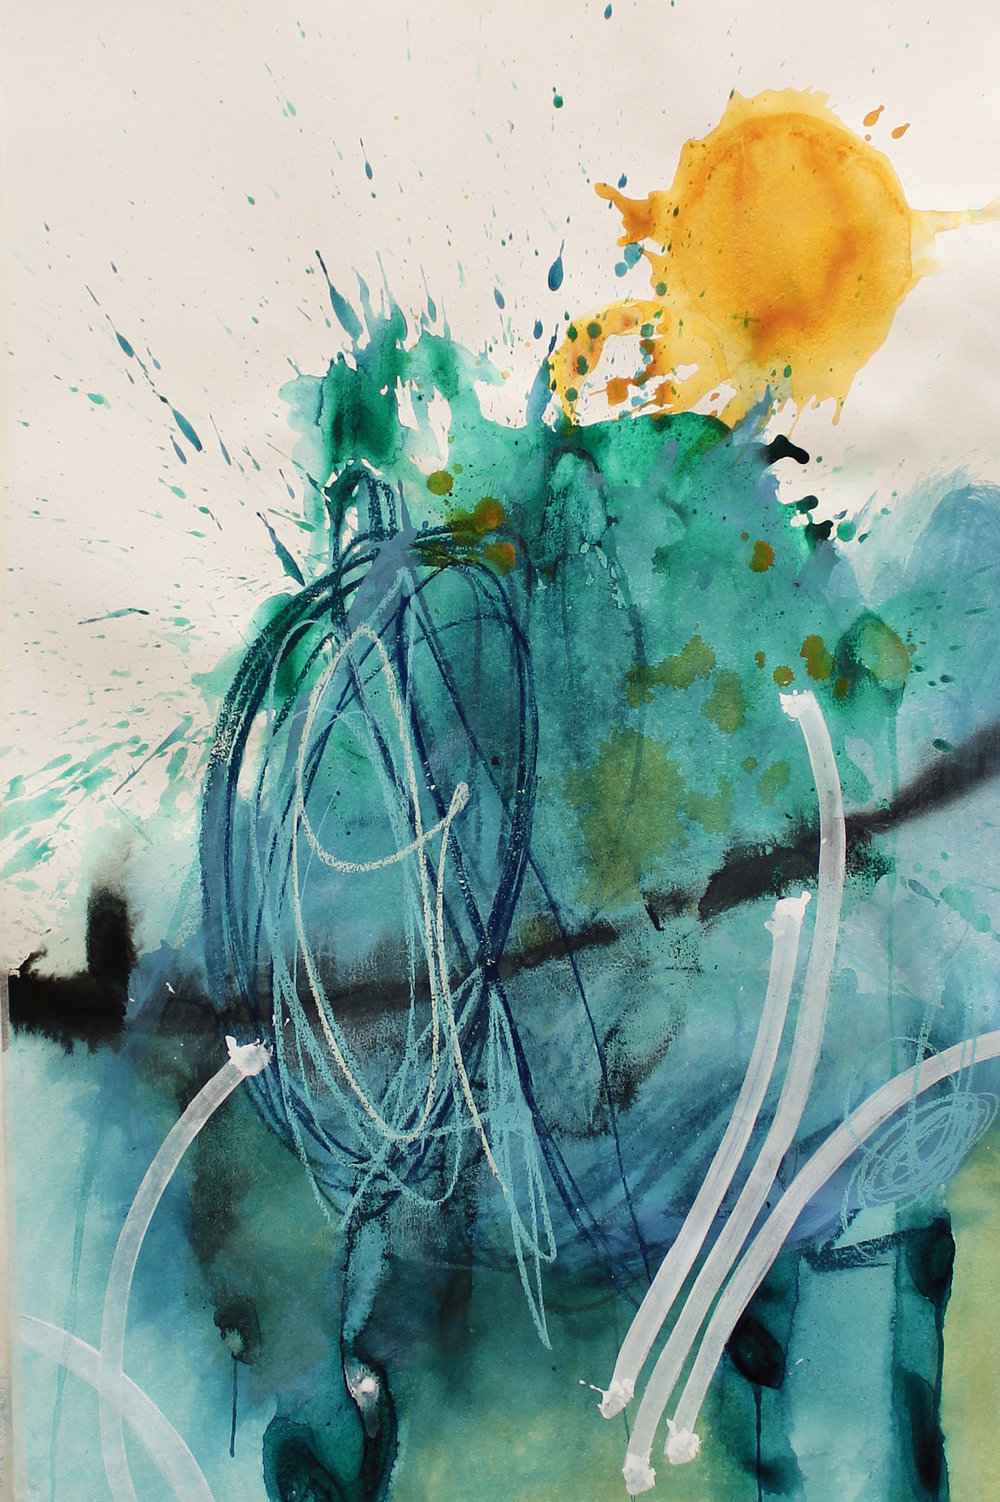 """""""Little bit of a Chance"""", Mix media on paper, 110x72cm, 2018   ~   Request Availability"""